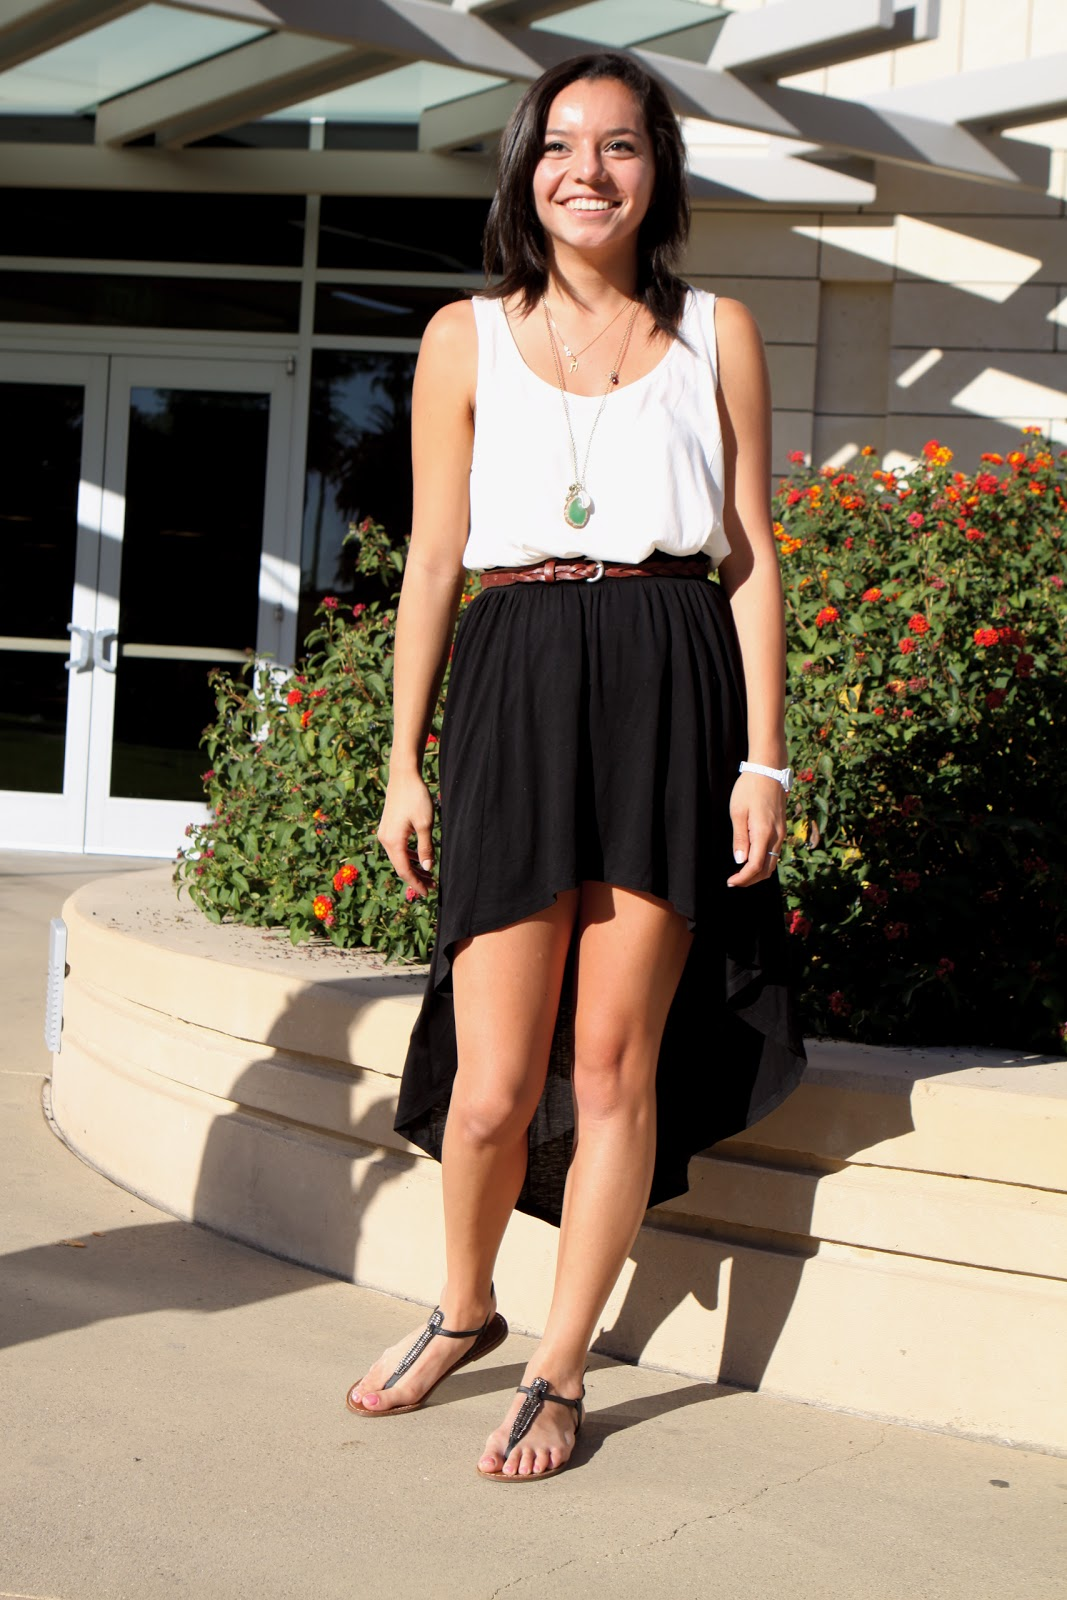 Here in the Northeast we are very jealous of the west coast and its warmer weather which allows SCU student Alejandra to still wear a black mullet dress, a white sleeveless top and sandals in December.